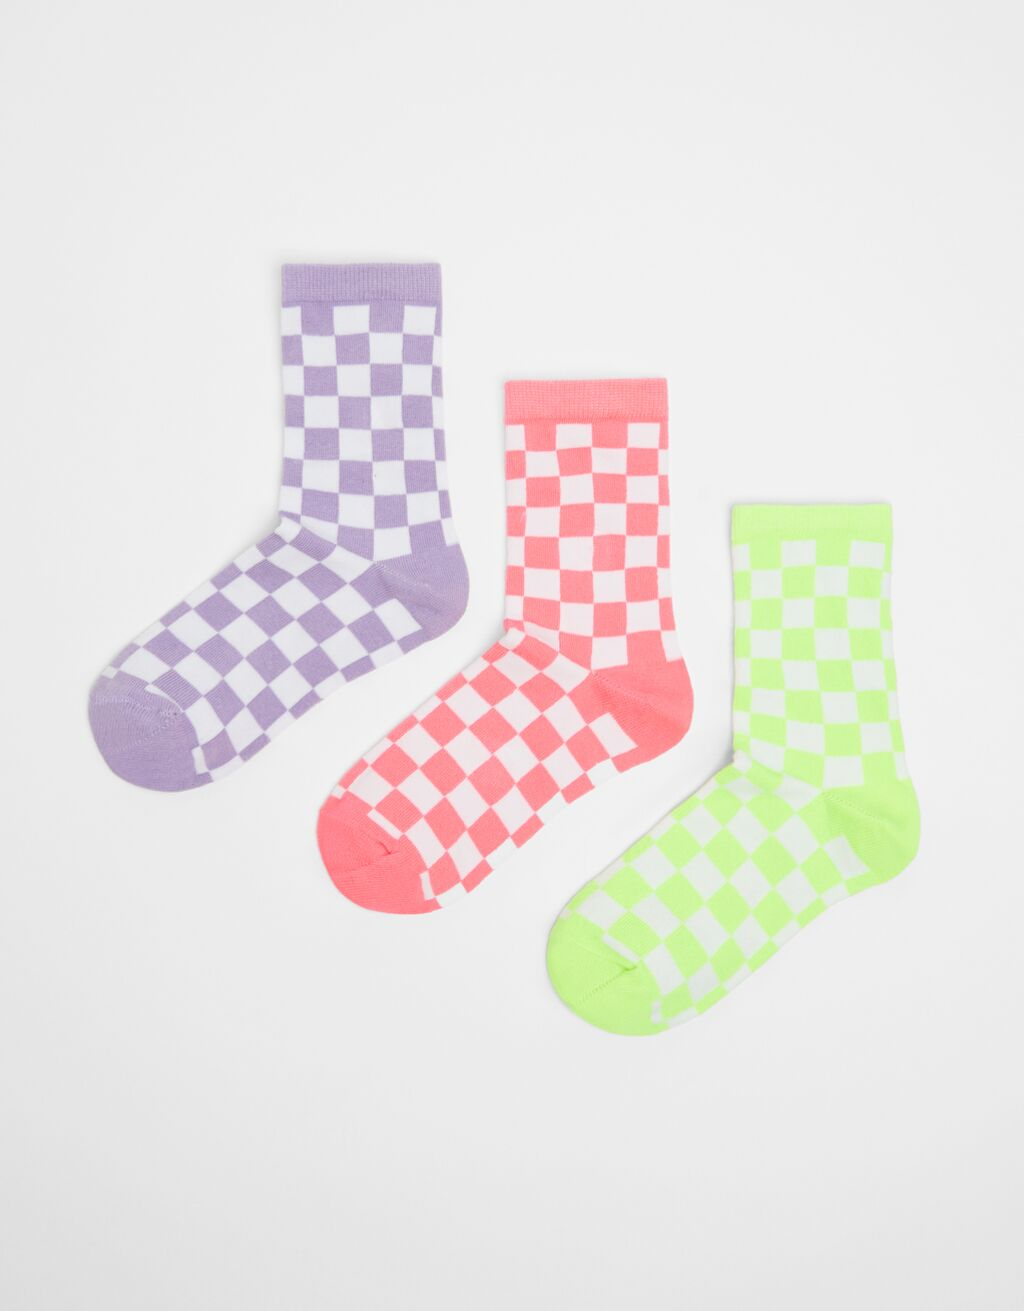 Pack of checked socks